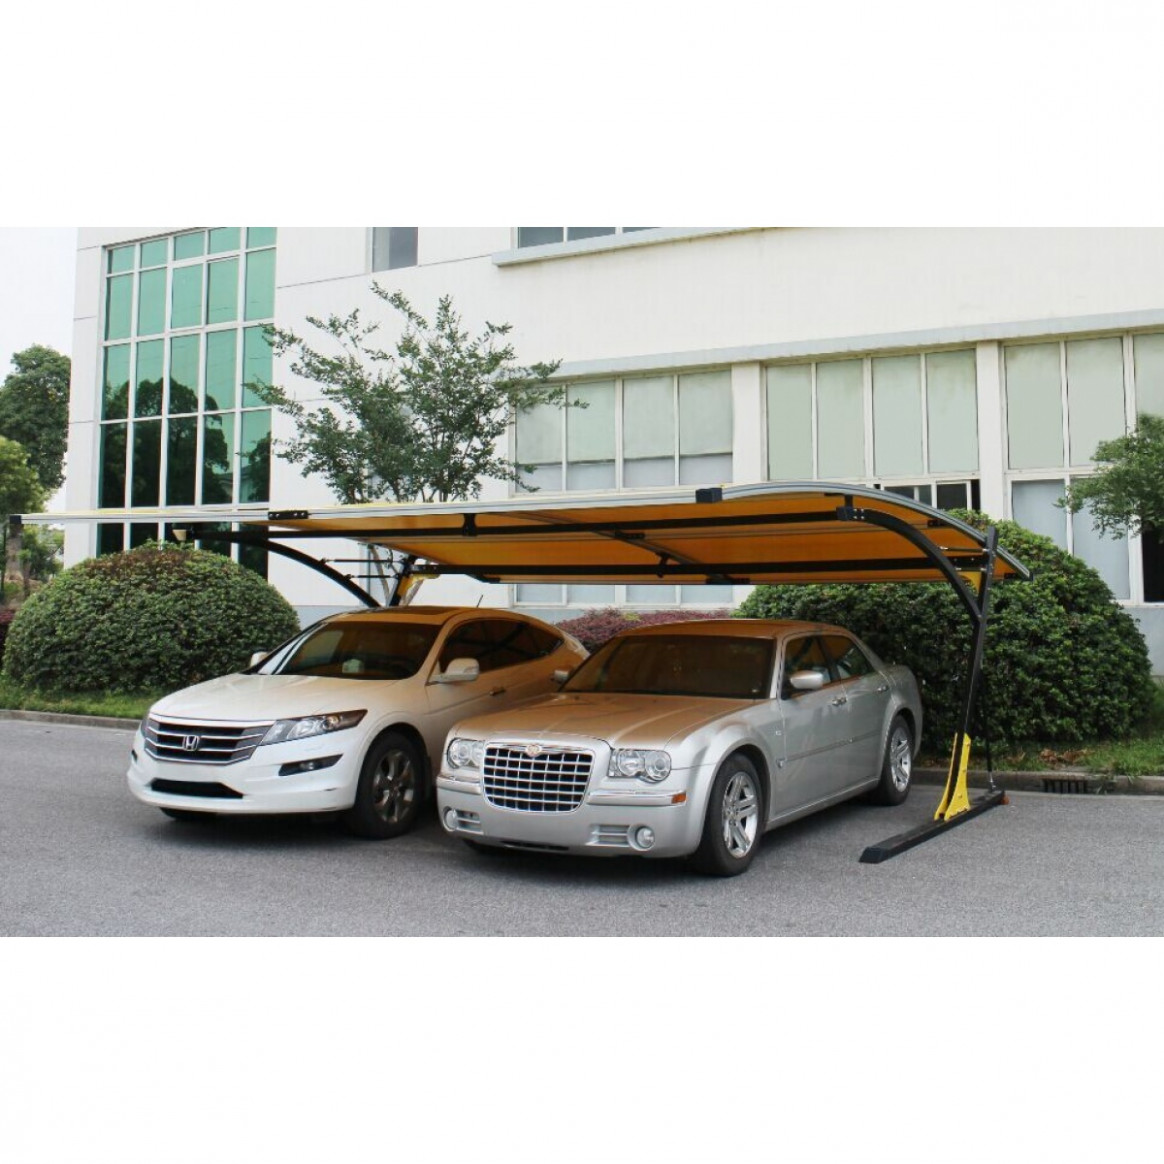 Park In Style Single/Double Arched Canopy Carport Canopy Style Carports